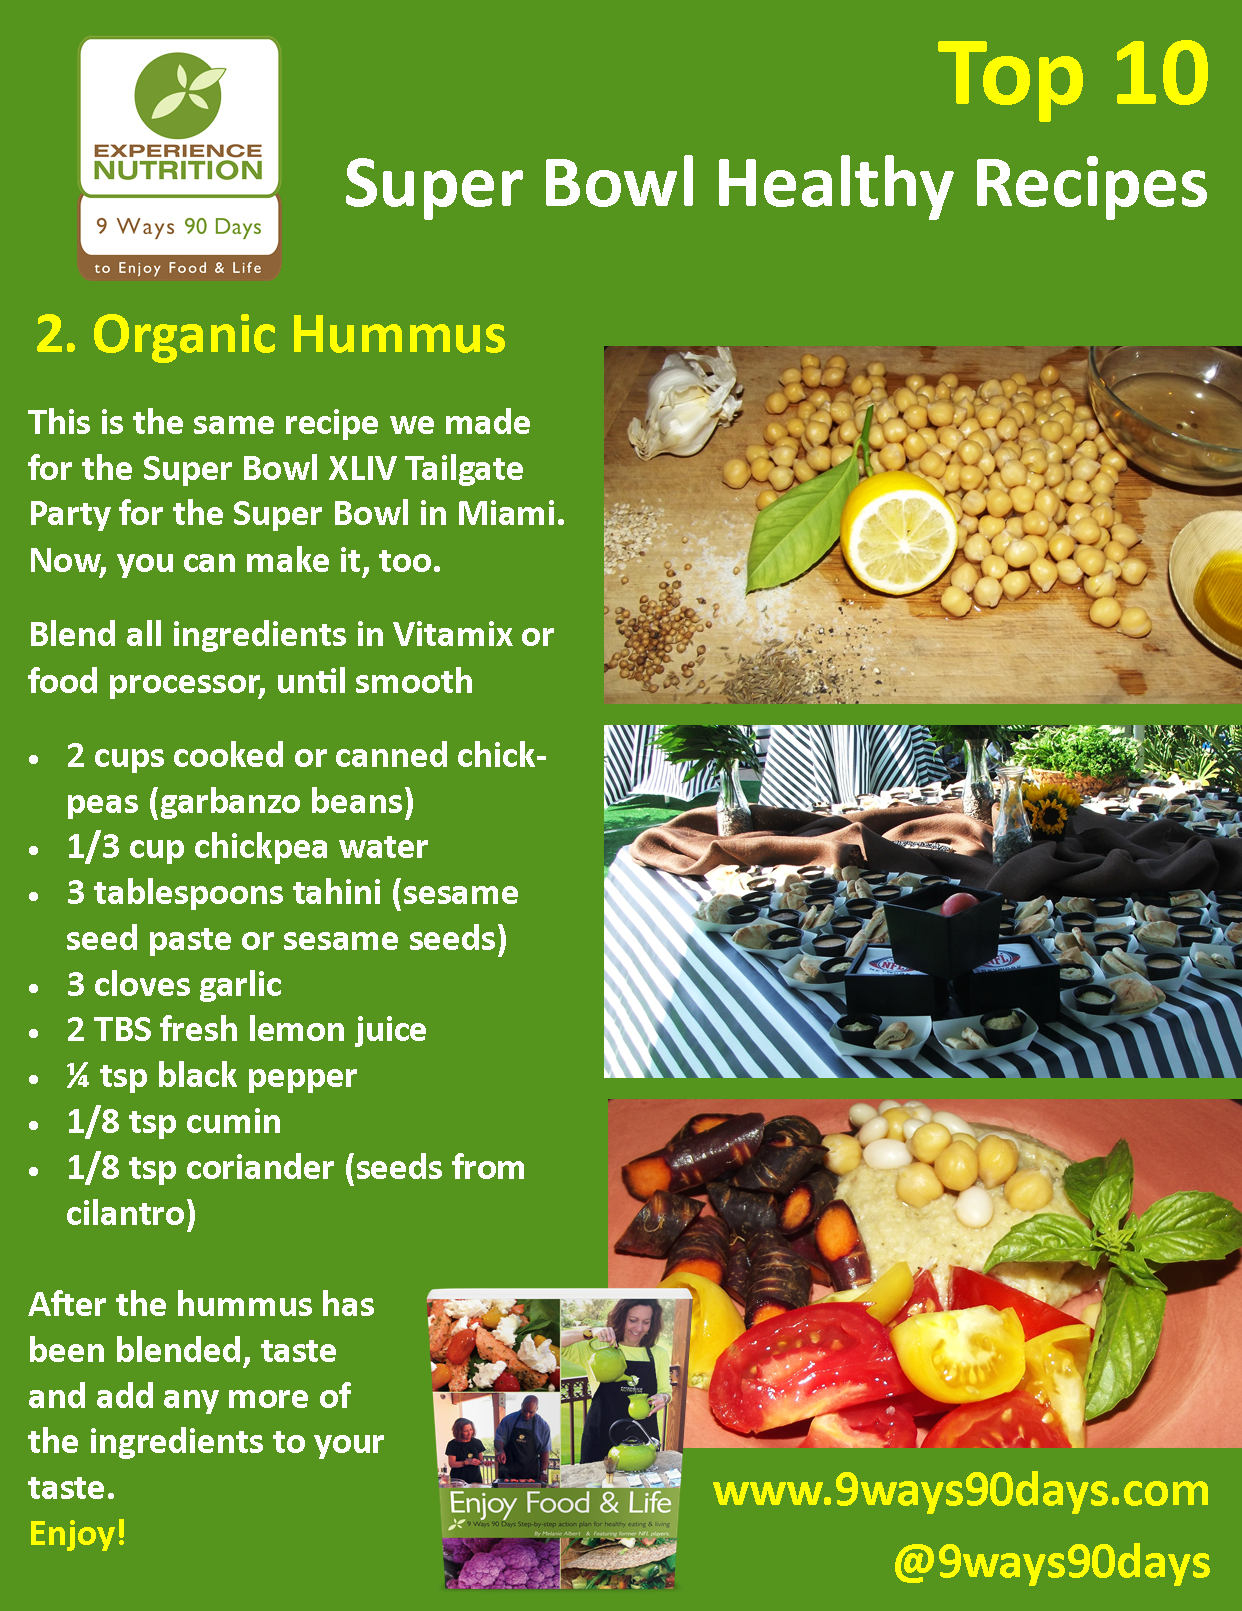 Experience nutrition 9 ways 90 days top 10 super bowl healthy experience nutrition 9 ways 90 days top 10 super bowl healthy recipes 2 forumfinder Choice Image